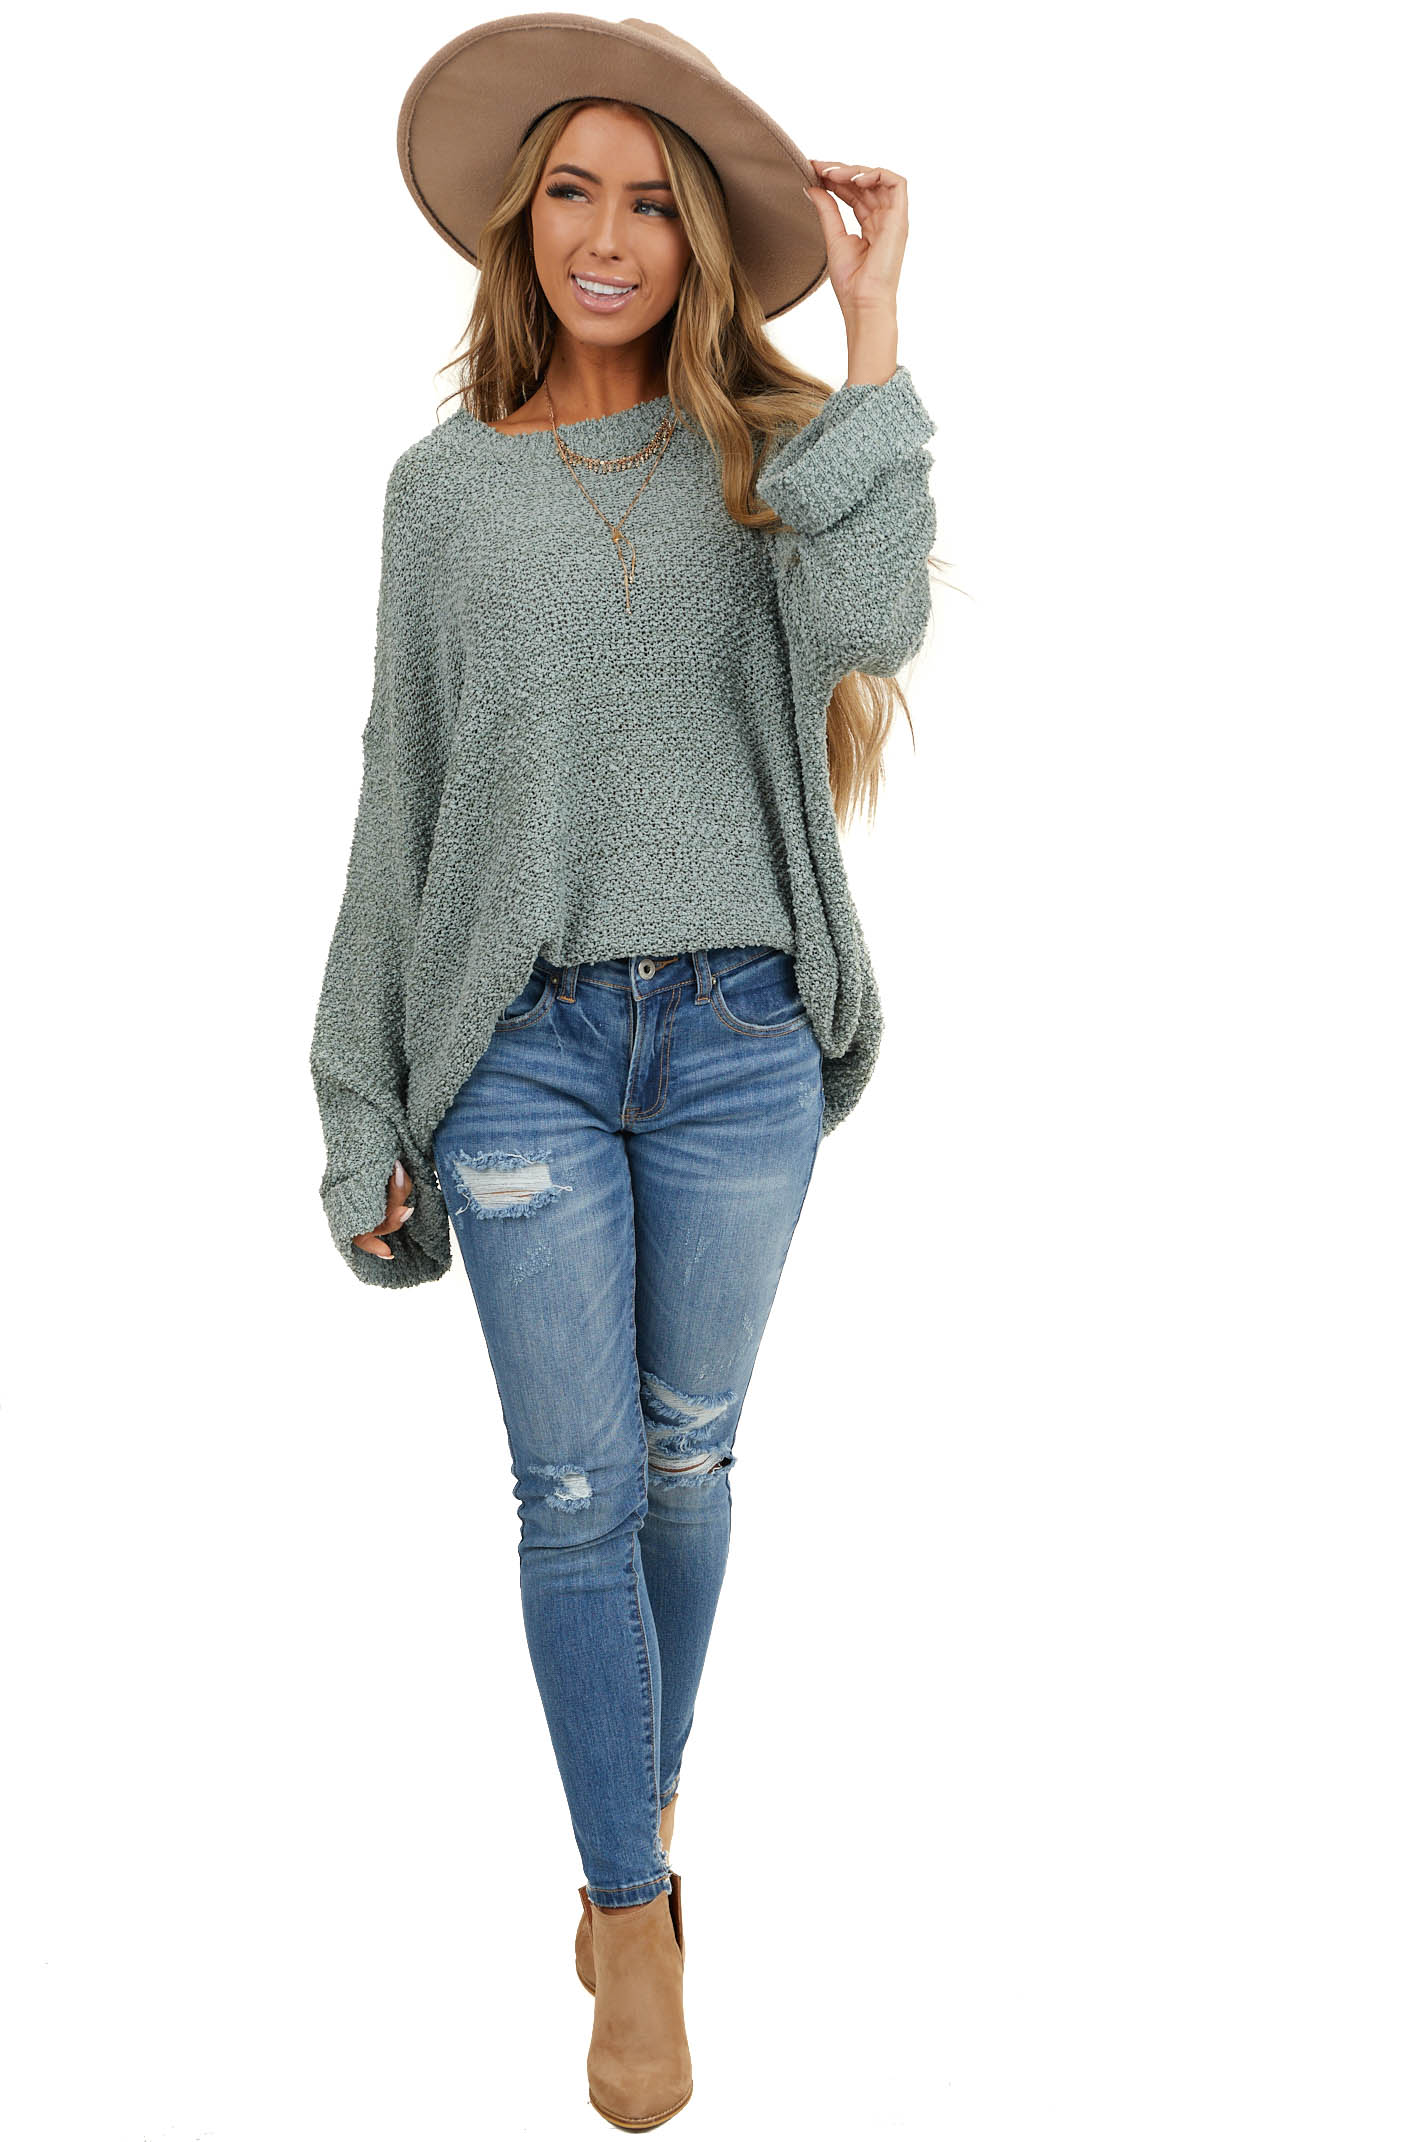 Dark Sage Popcorn Textured Knit Sweater with Bell Sleeves